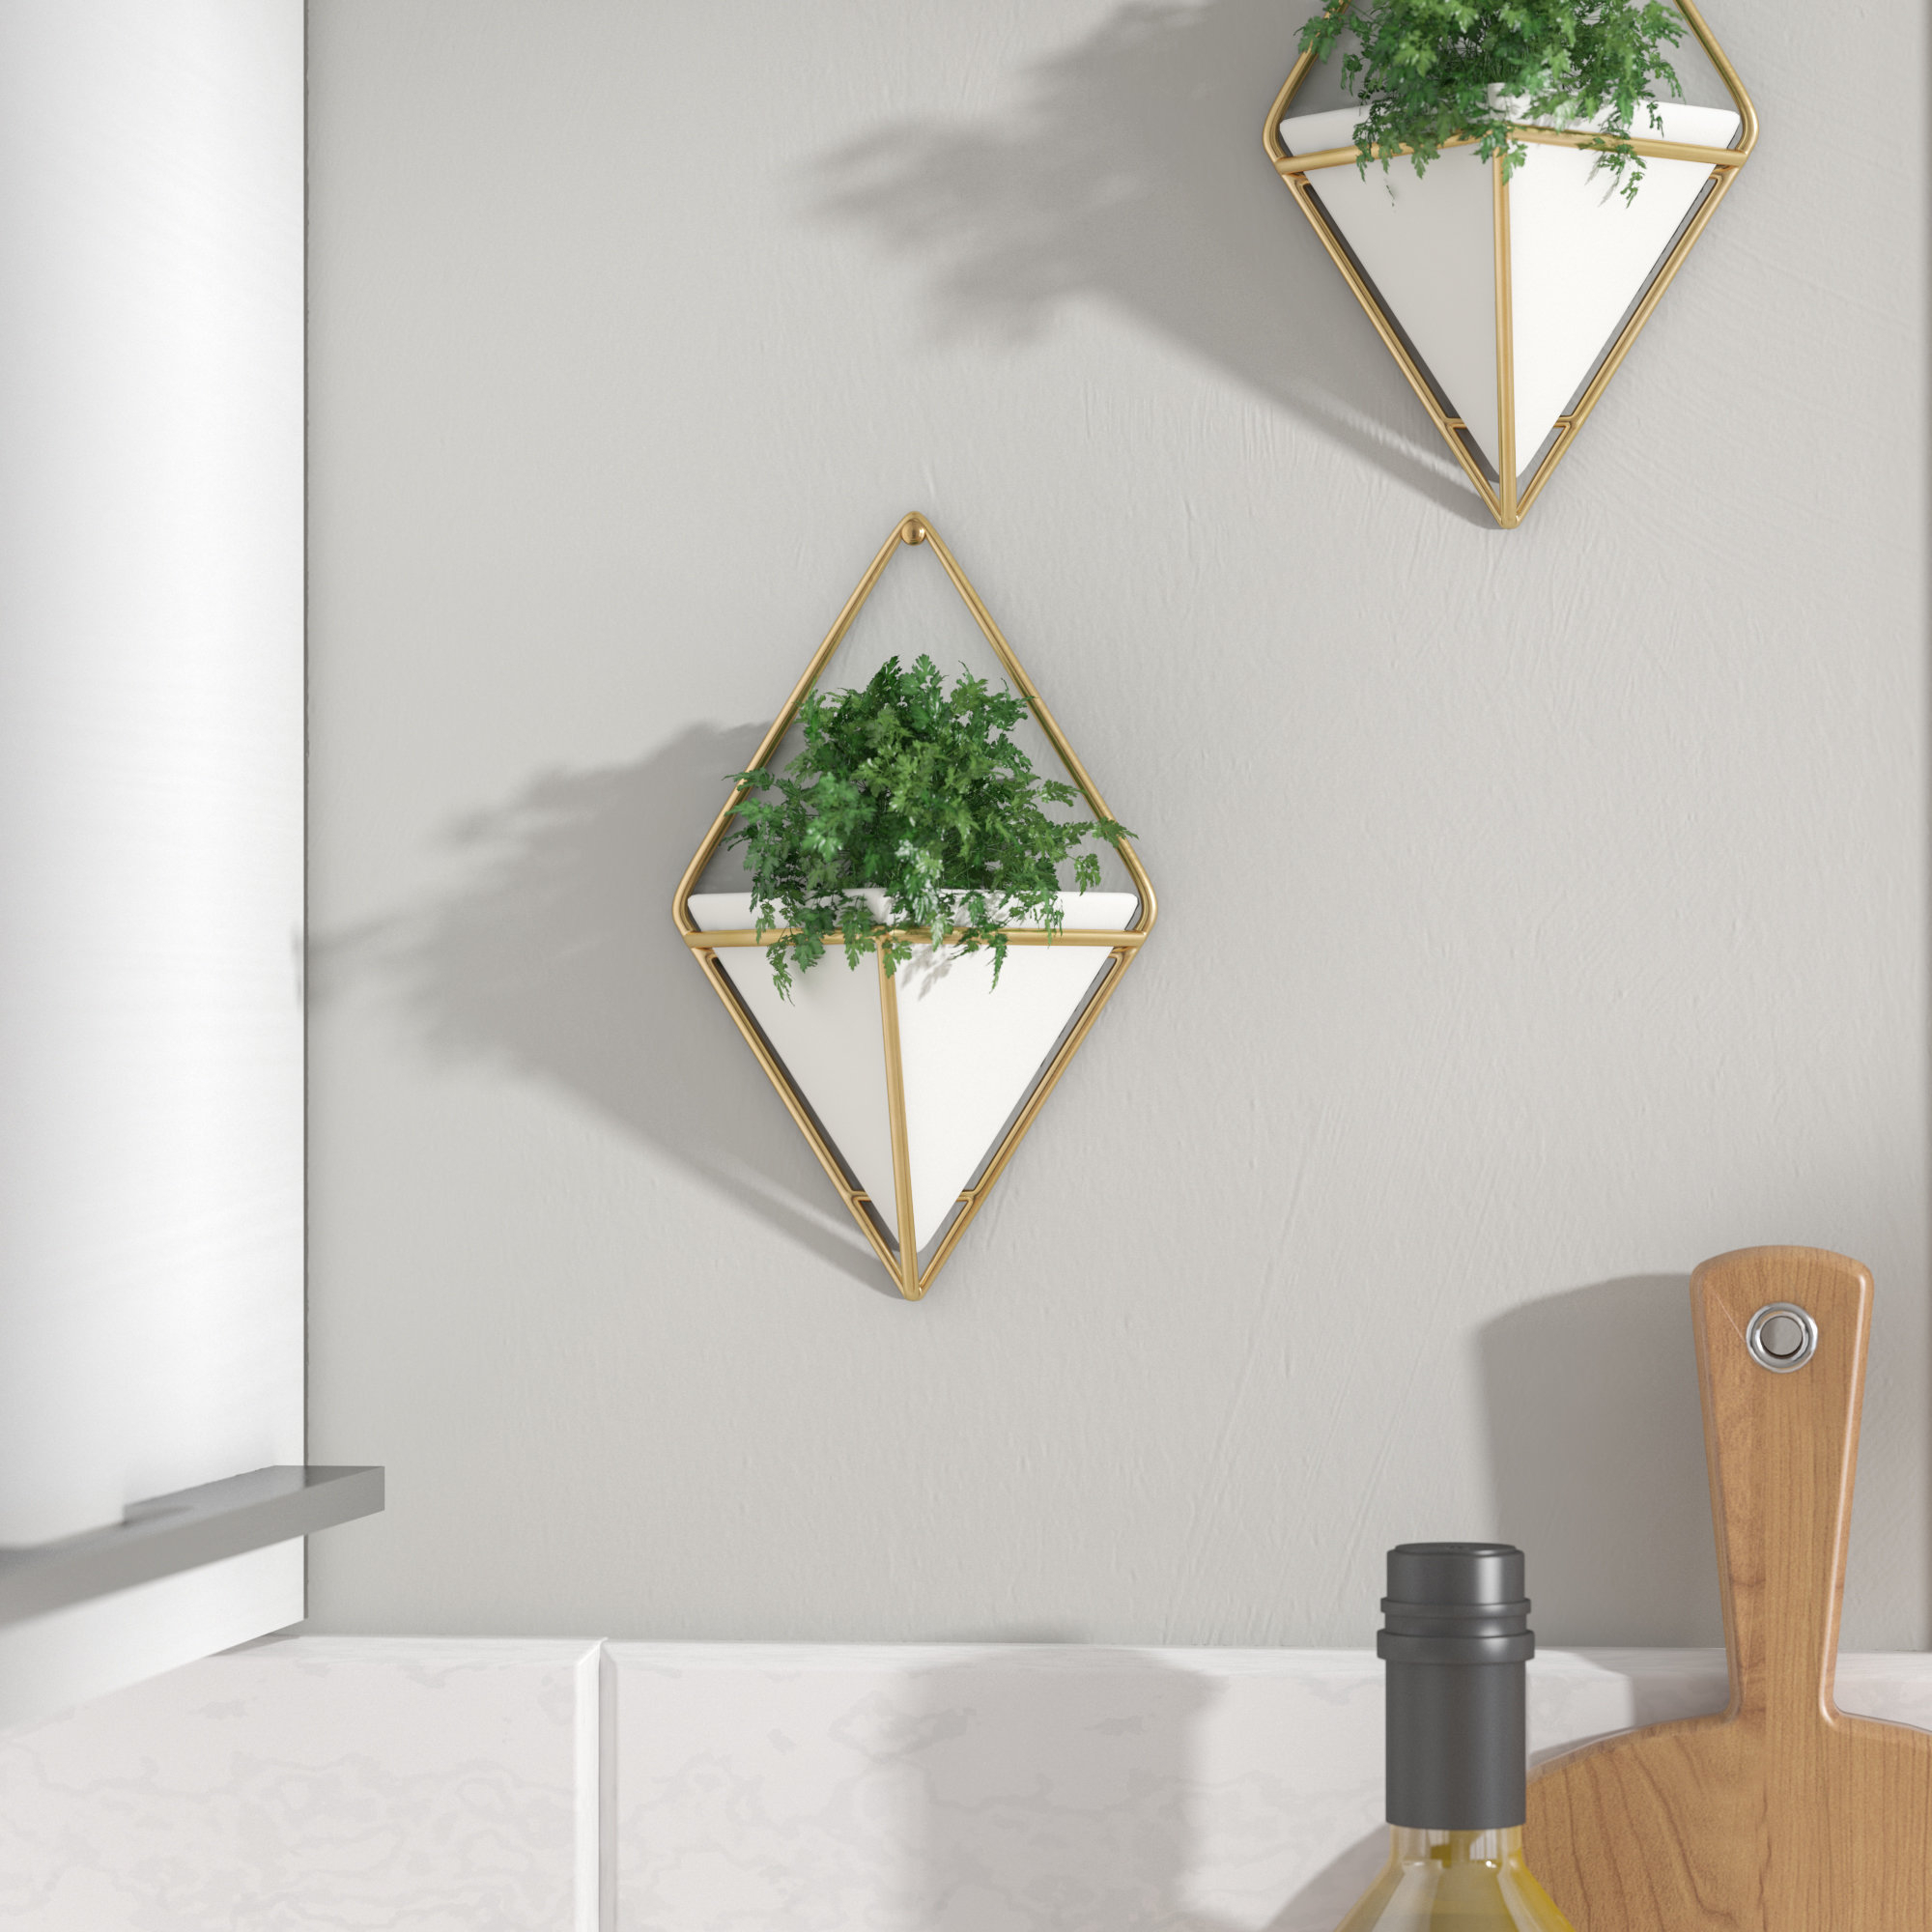 2 Piece Trigg Wall Décor Set Intended For Trigg Ceramic Planter Wall Decor (Photo 14 of 30)